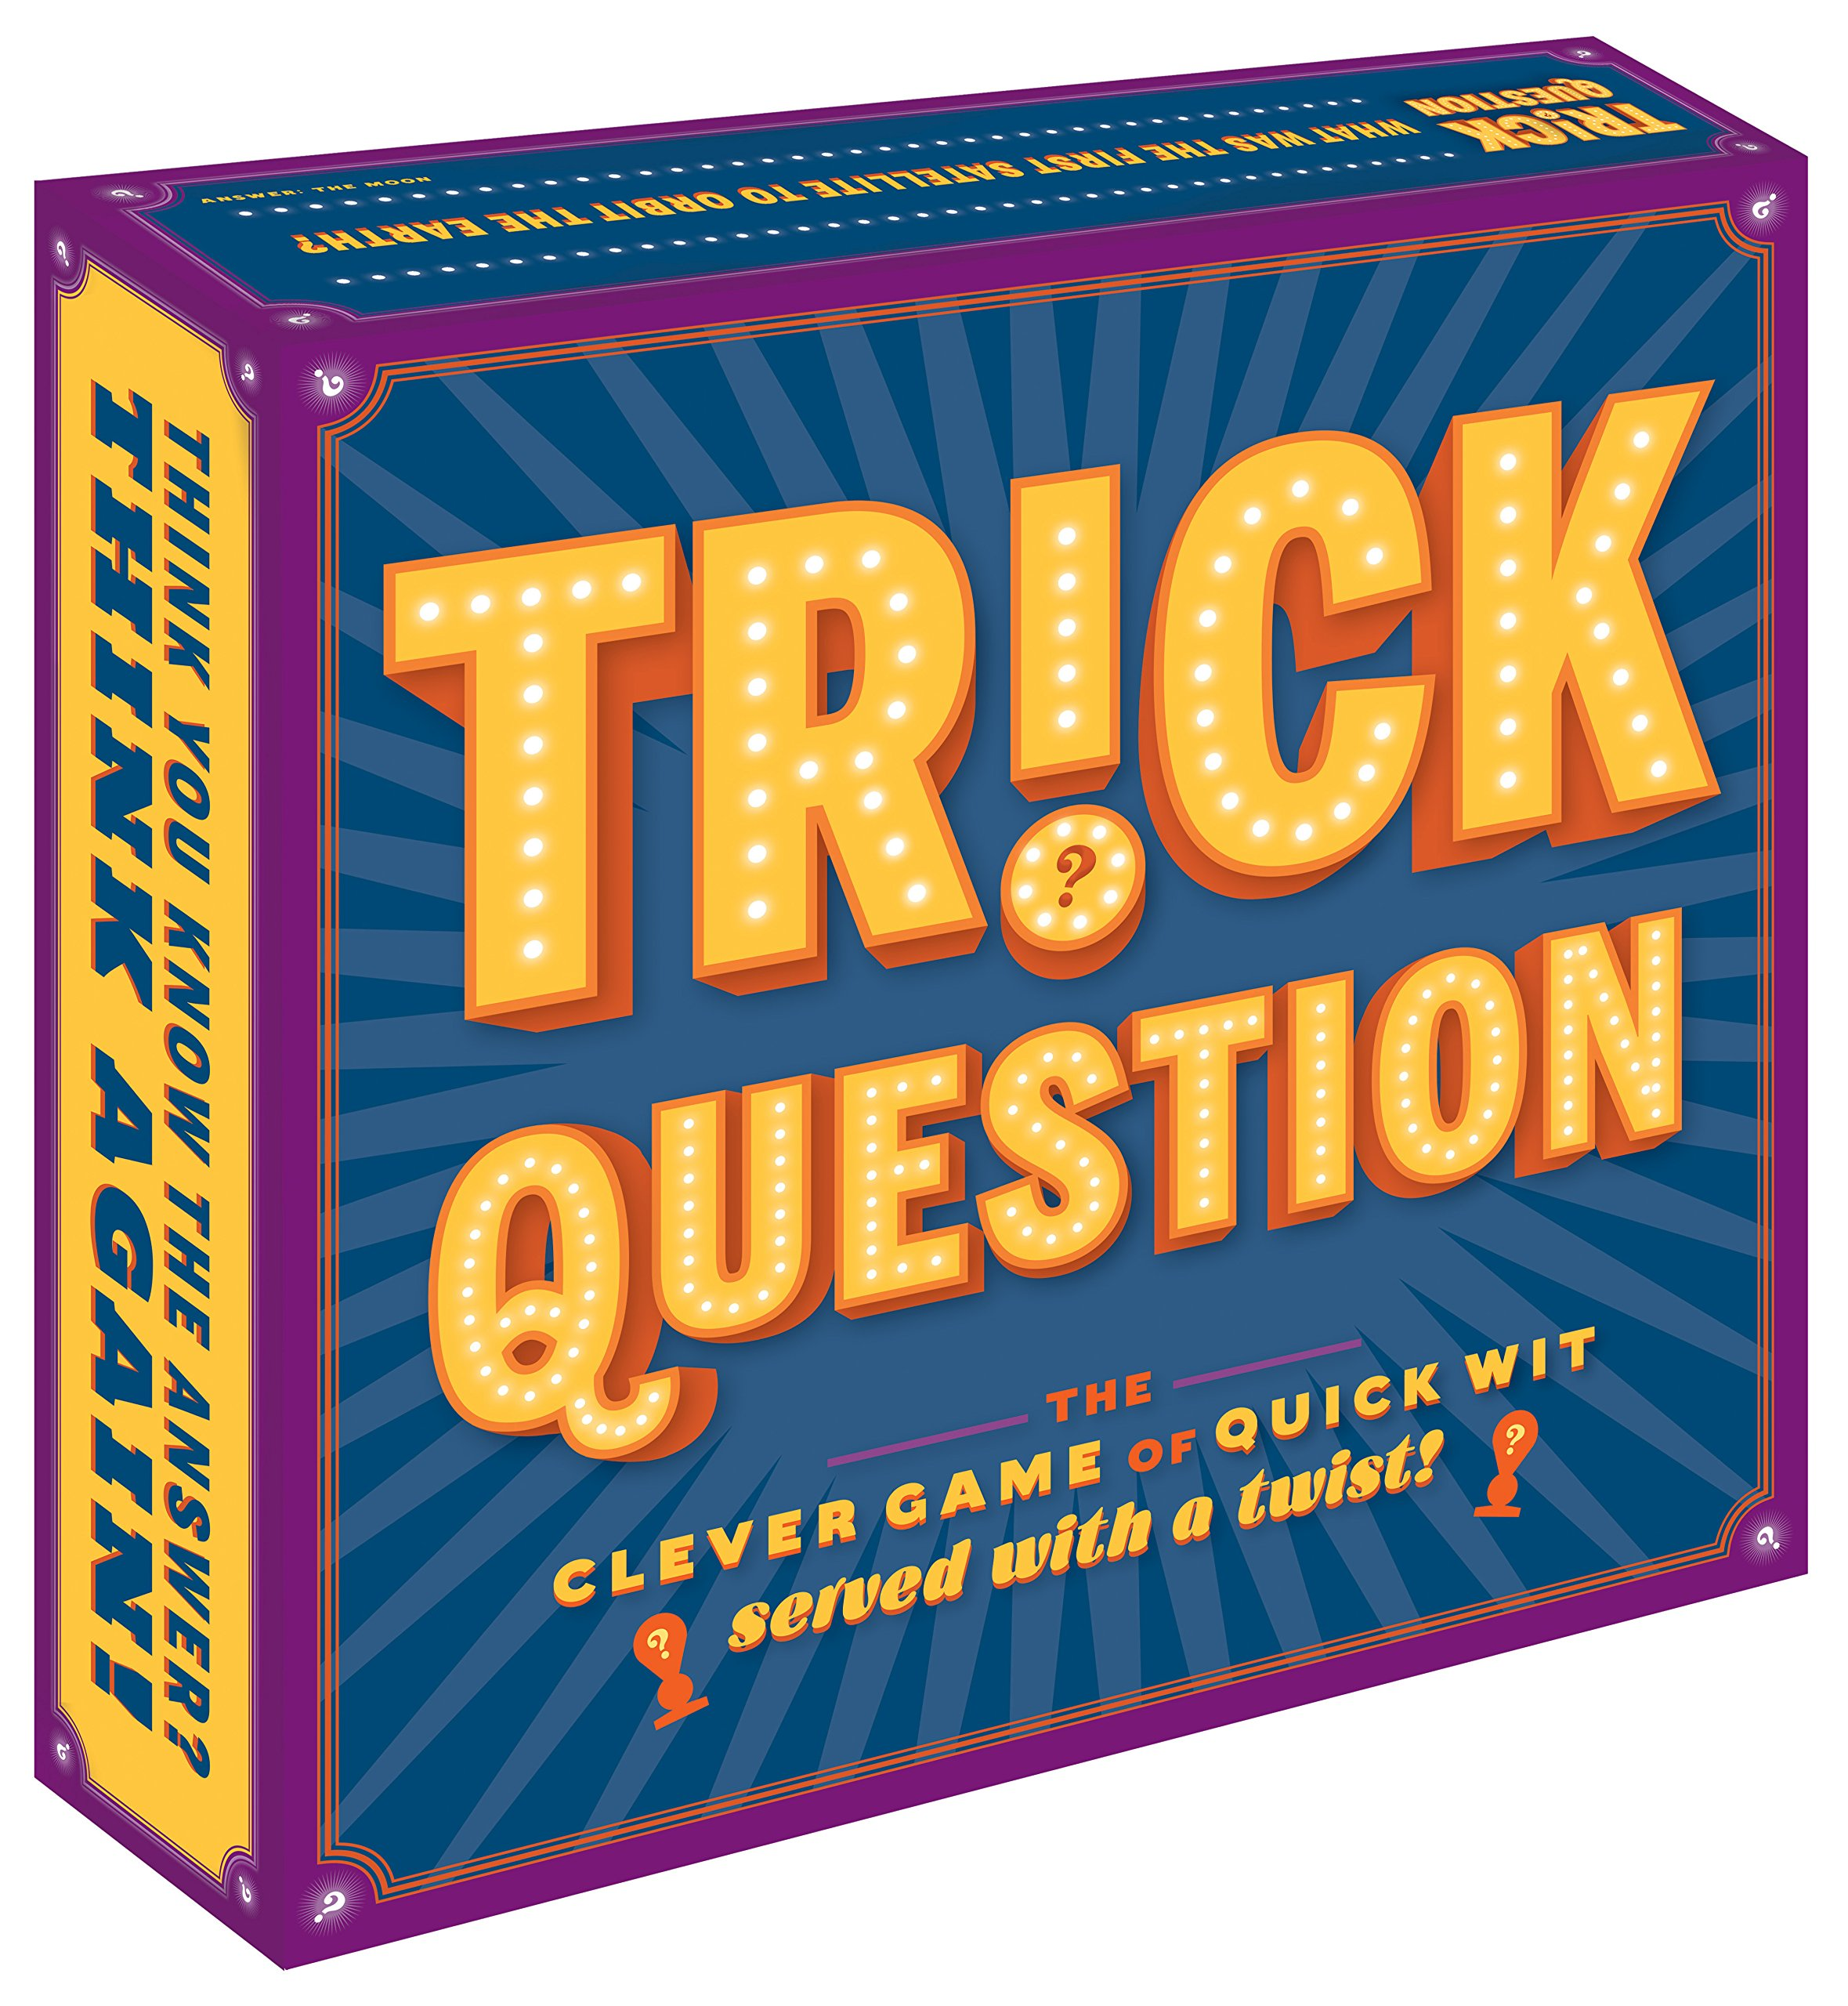 Download Trick Question: The Clever Game of Quick Wit—Served with a Twist! pdf epub